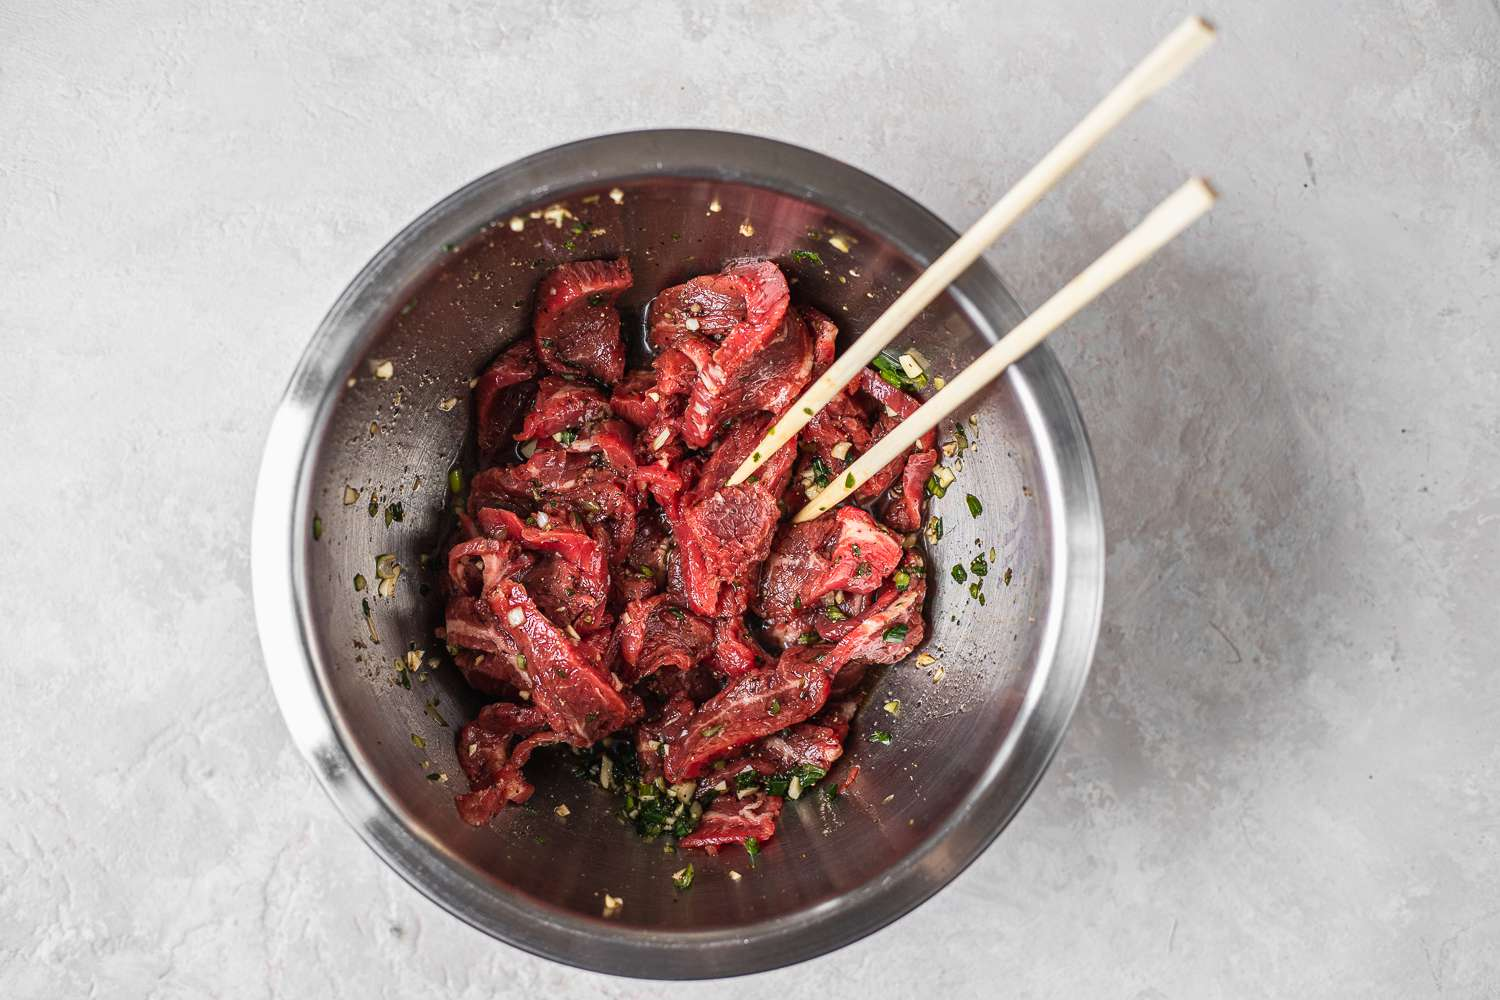 Mix the marinade into meat